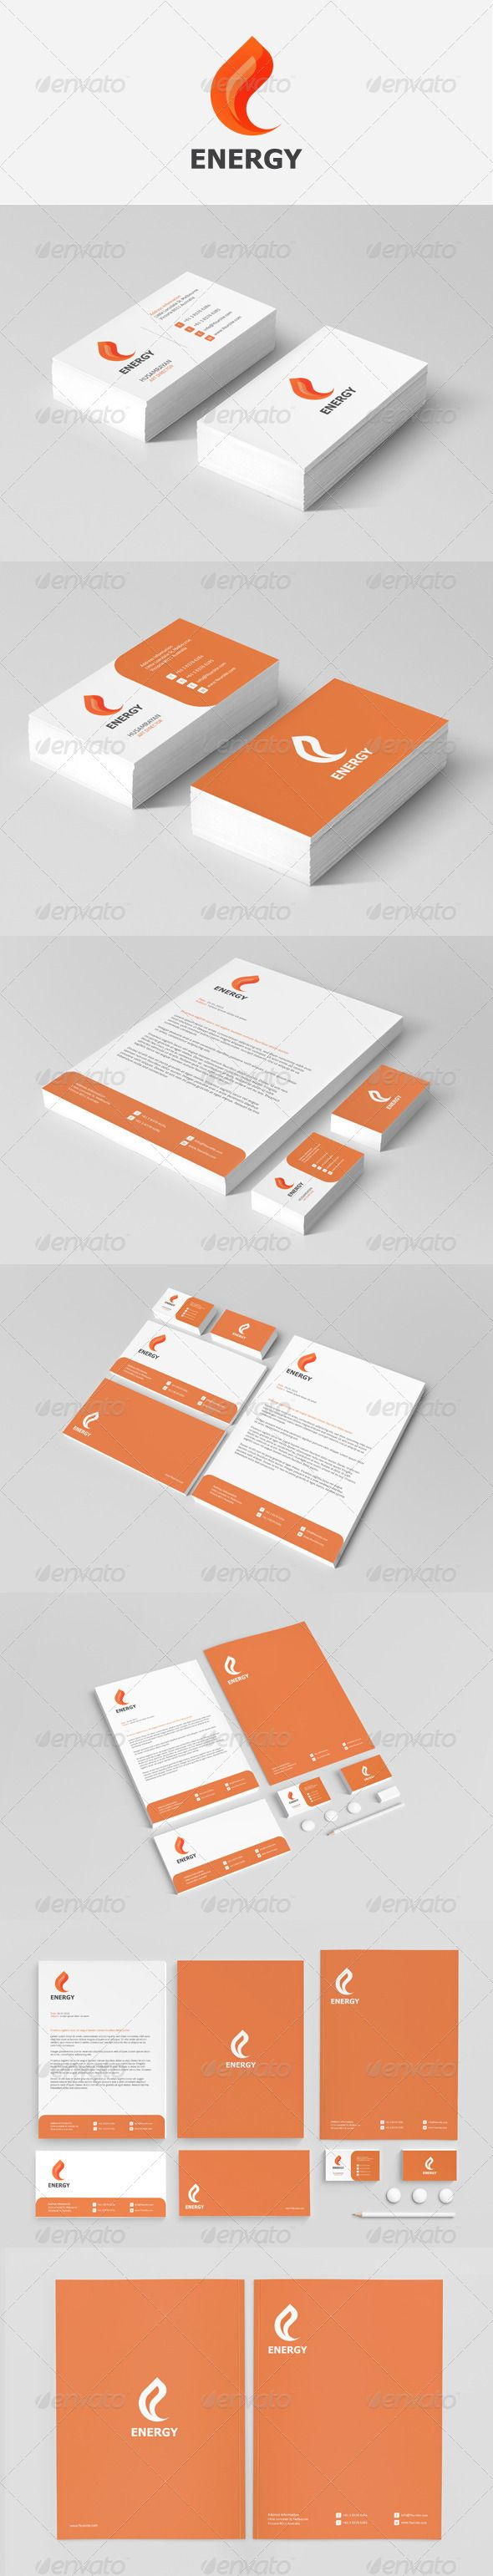 Energy Stationery - #Stationery Print Templates Download here: https://graphicriver.net/item/energy-stationery/3895142?ref=classicdesignp